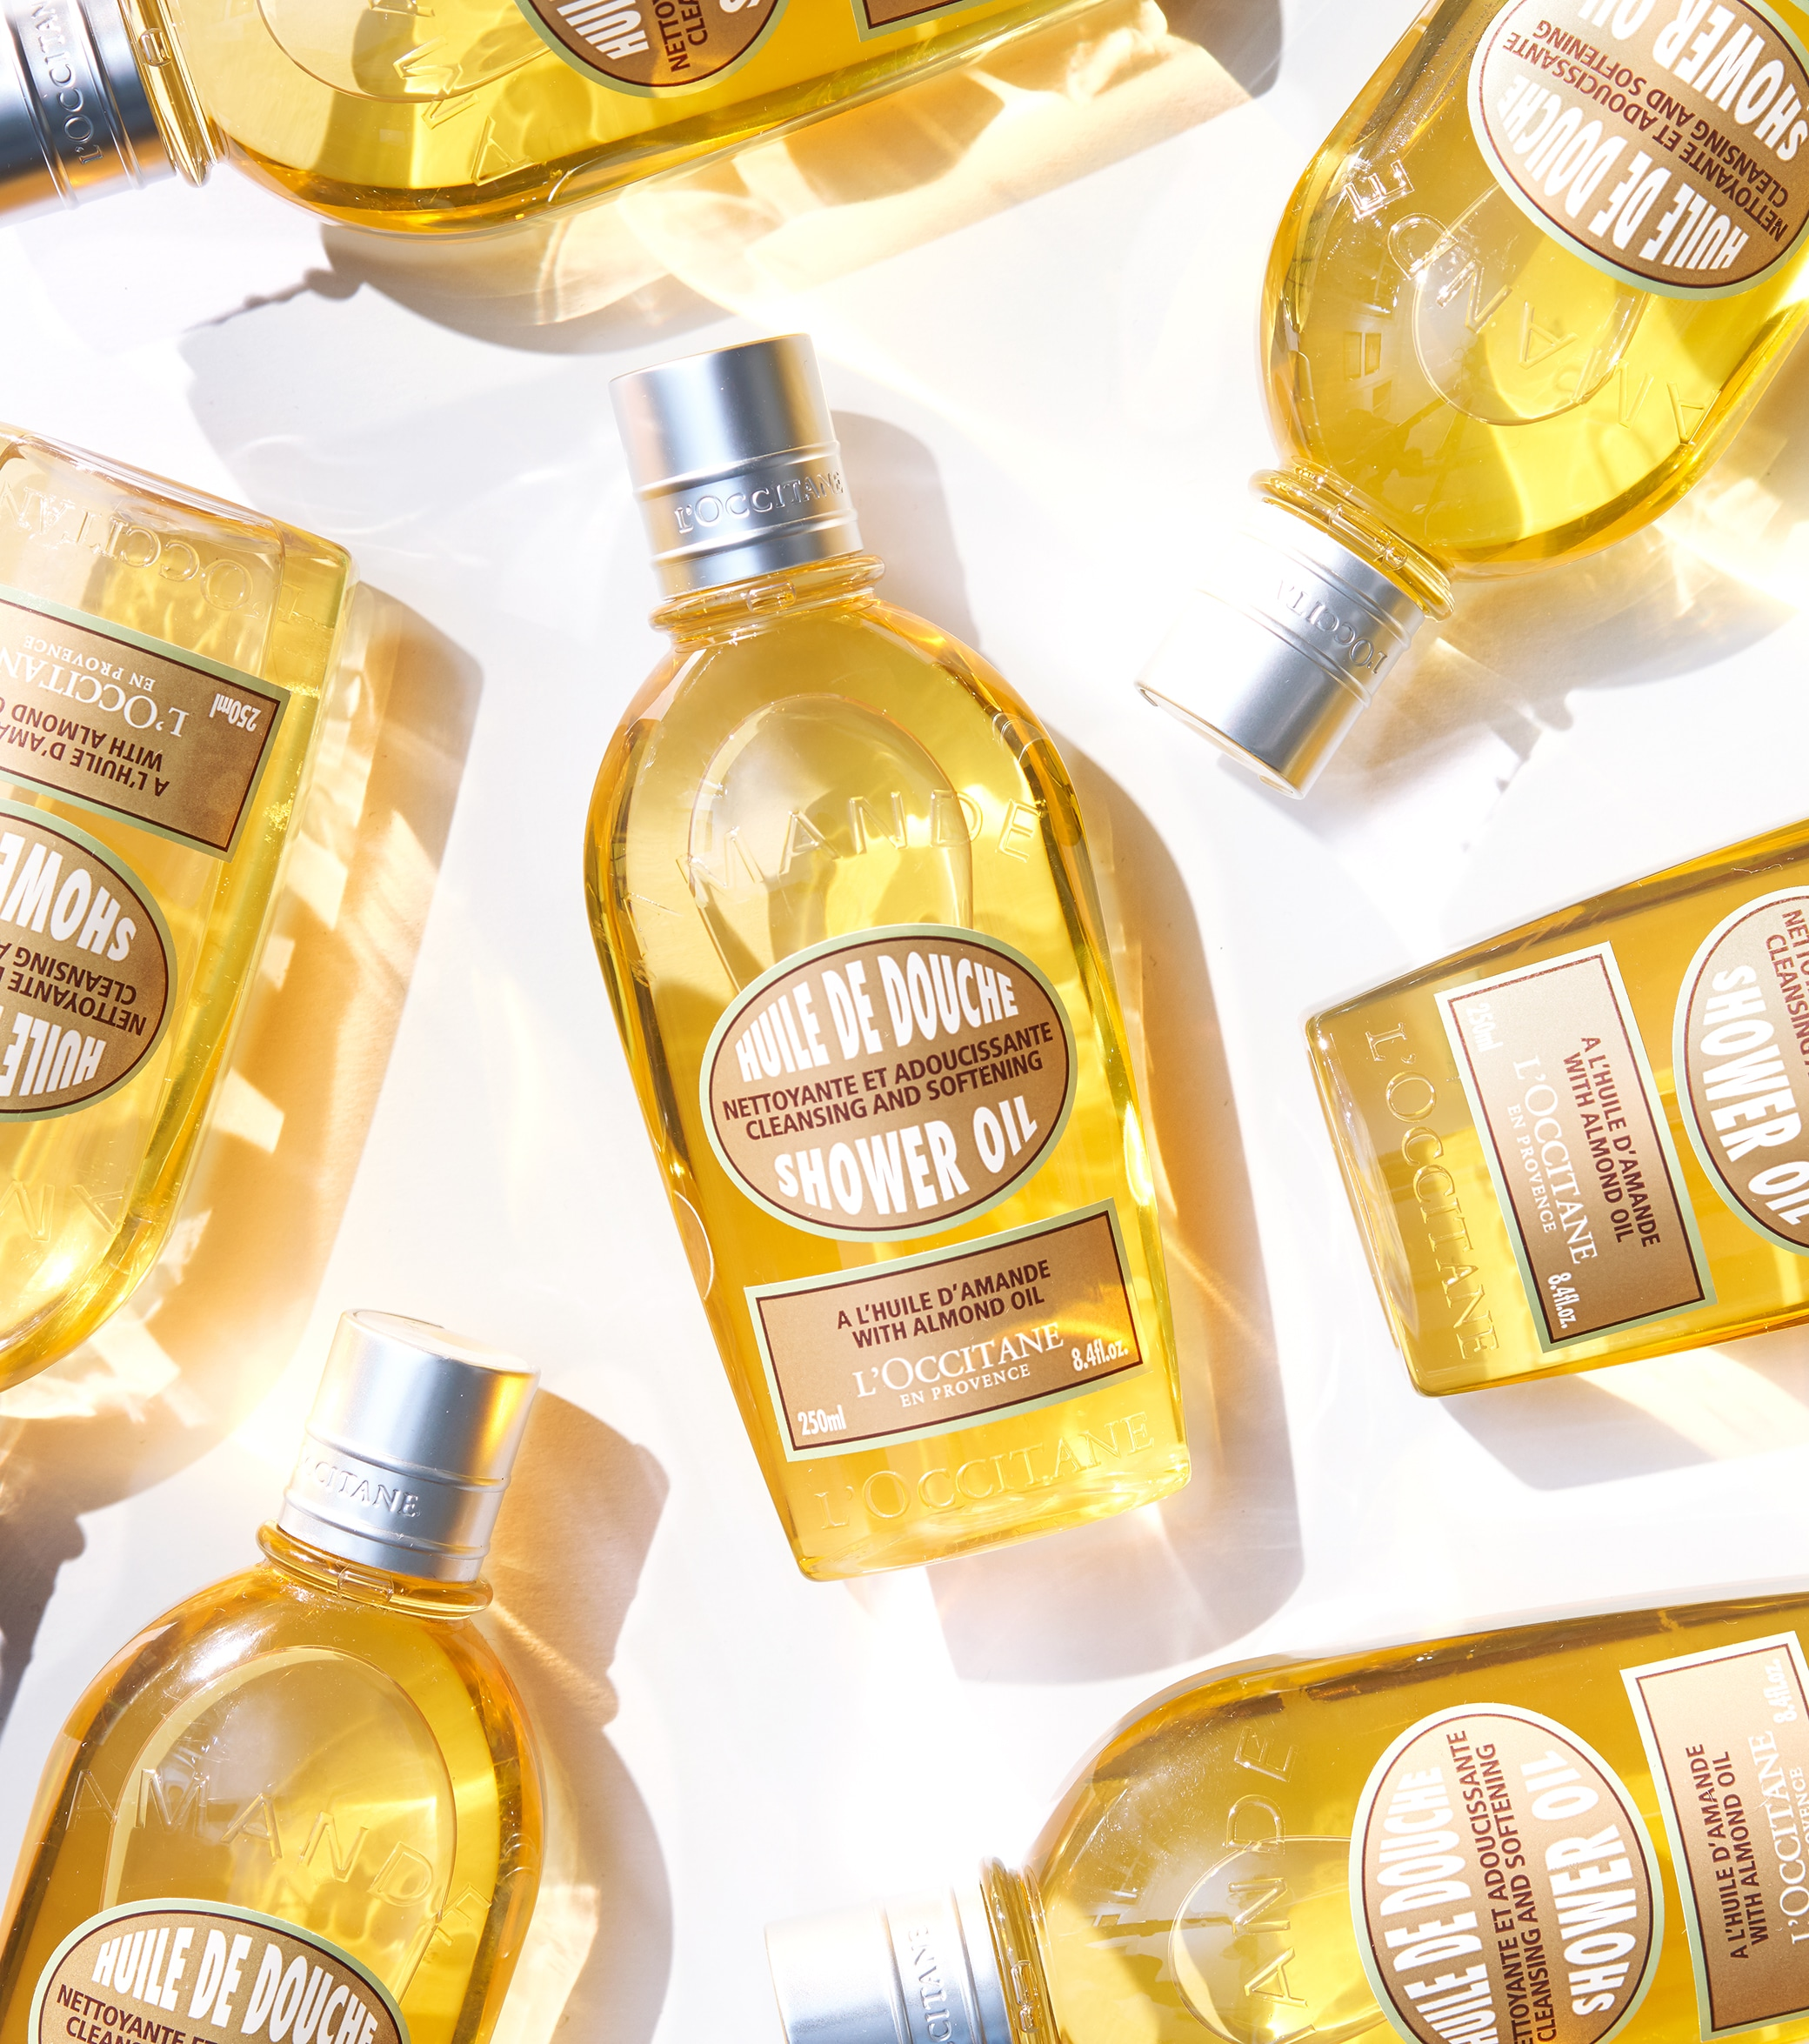 4 Reasons to ❤️️ Almond Shower Oil